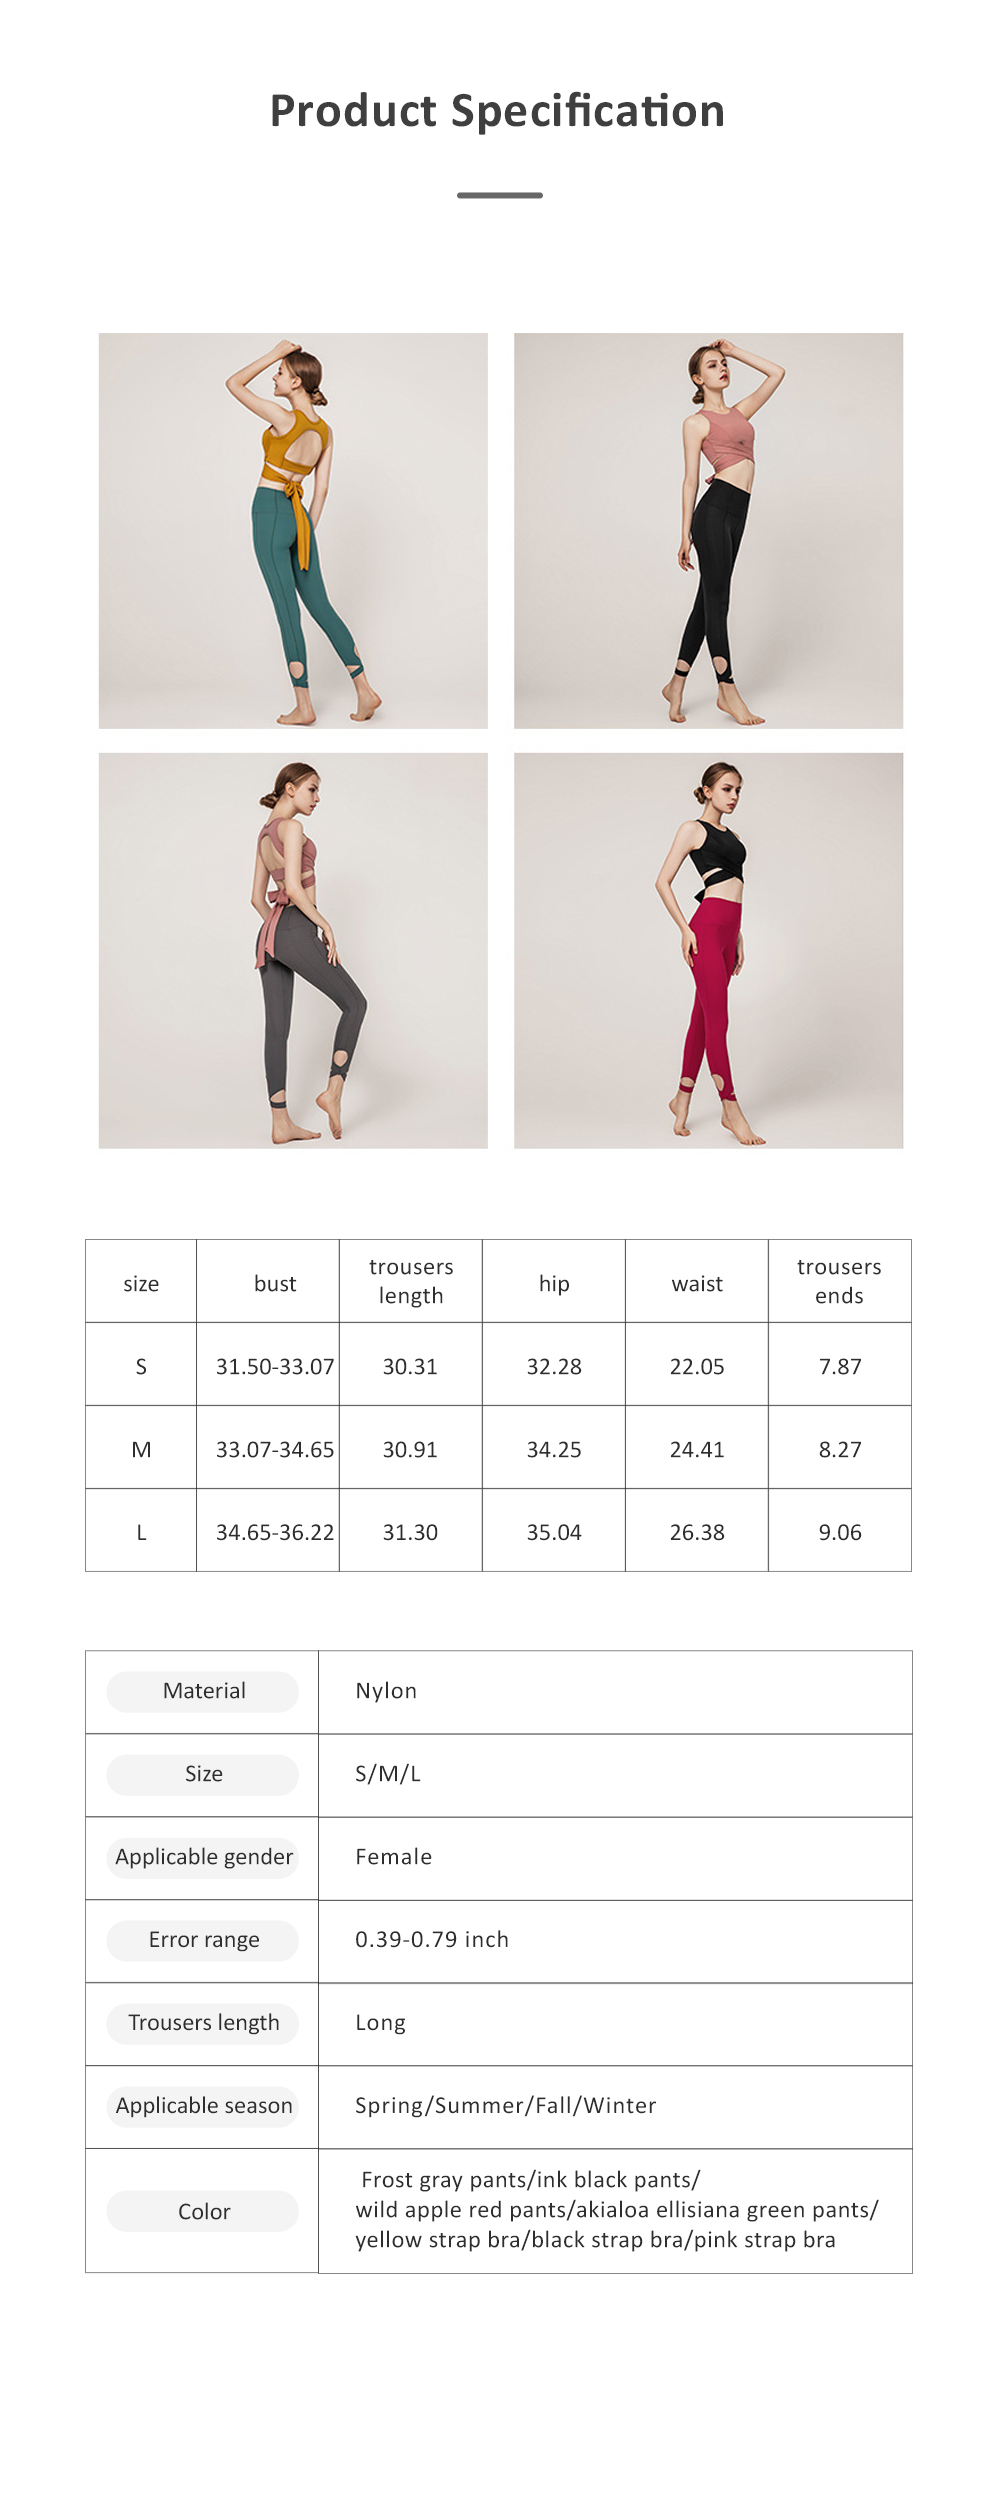 Women's Ultra Soft Yoga Suit With Strap-on Bra and High Waist Tummy Control Workout Leggings 8